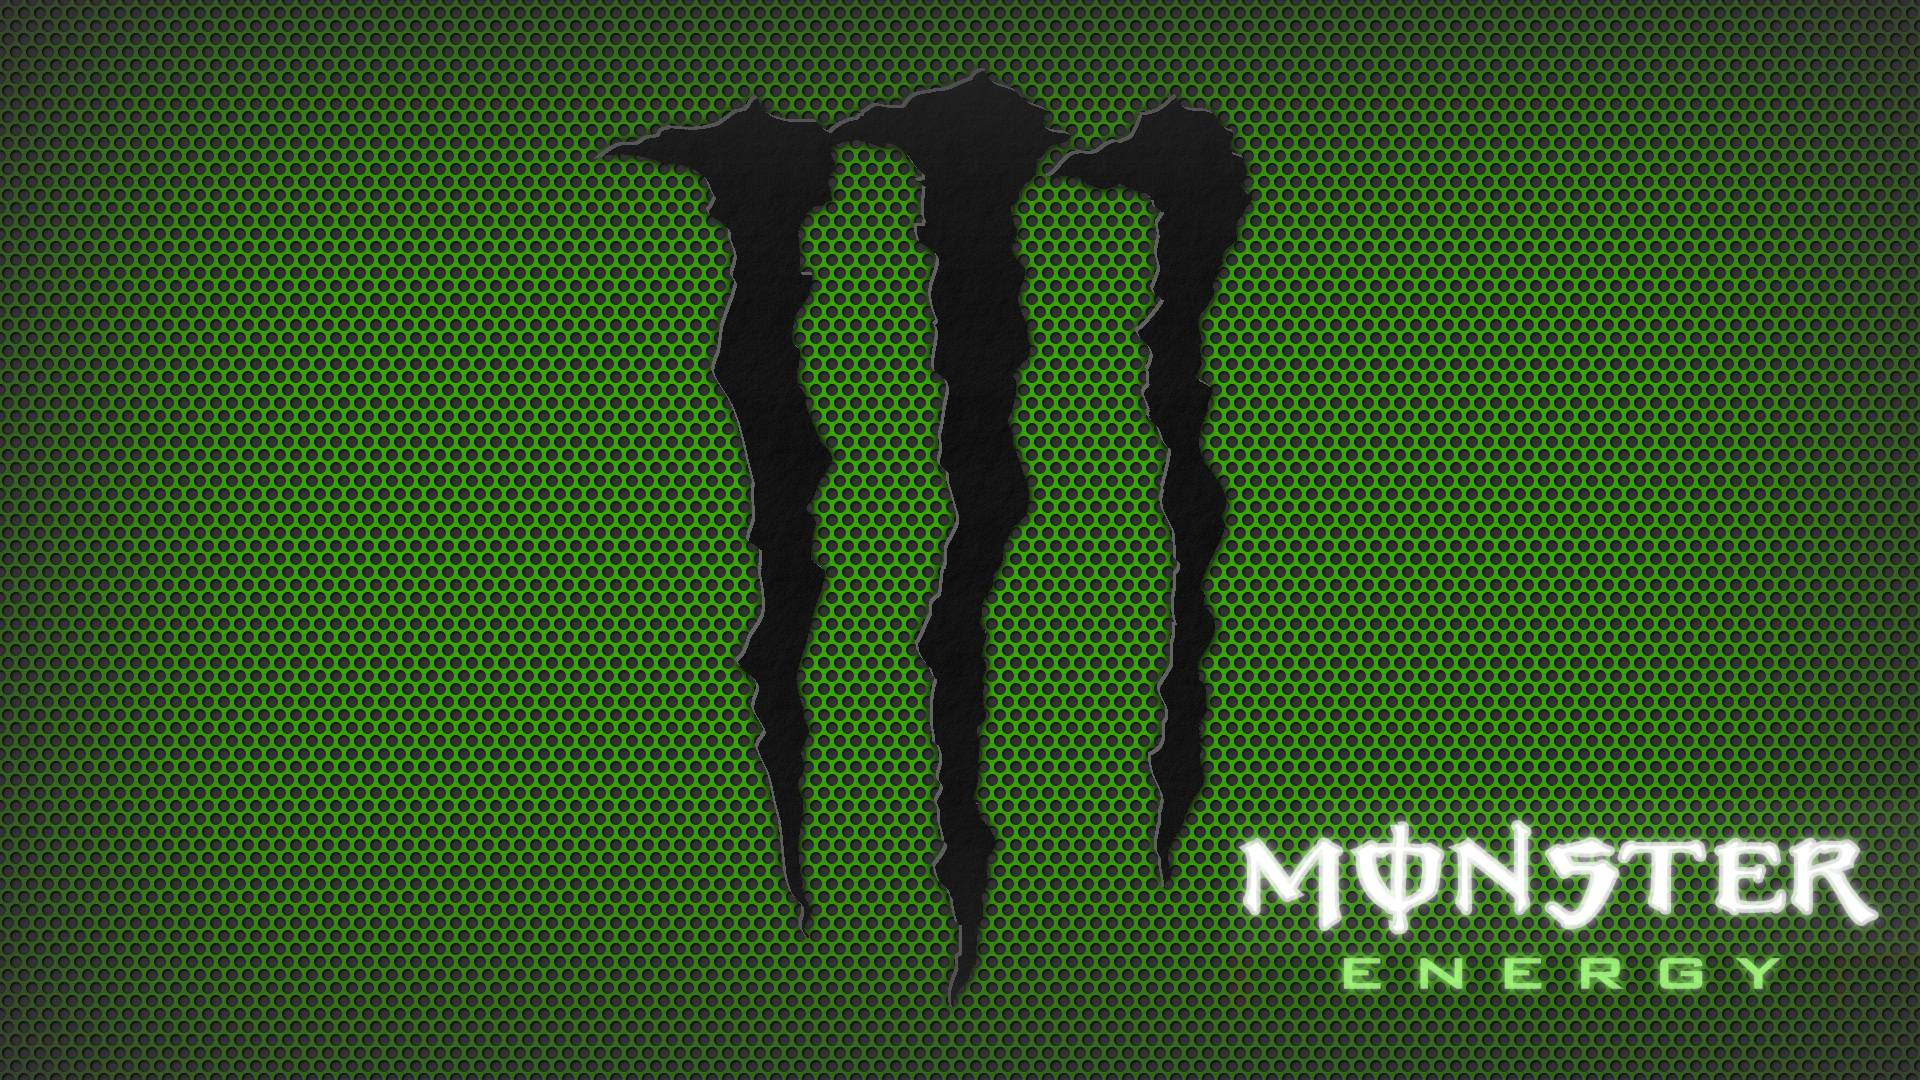 Hd wallpaper vivo - Wallpapers For Green Monster Energy Wallpaper